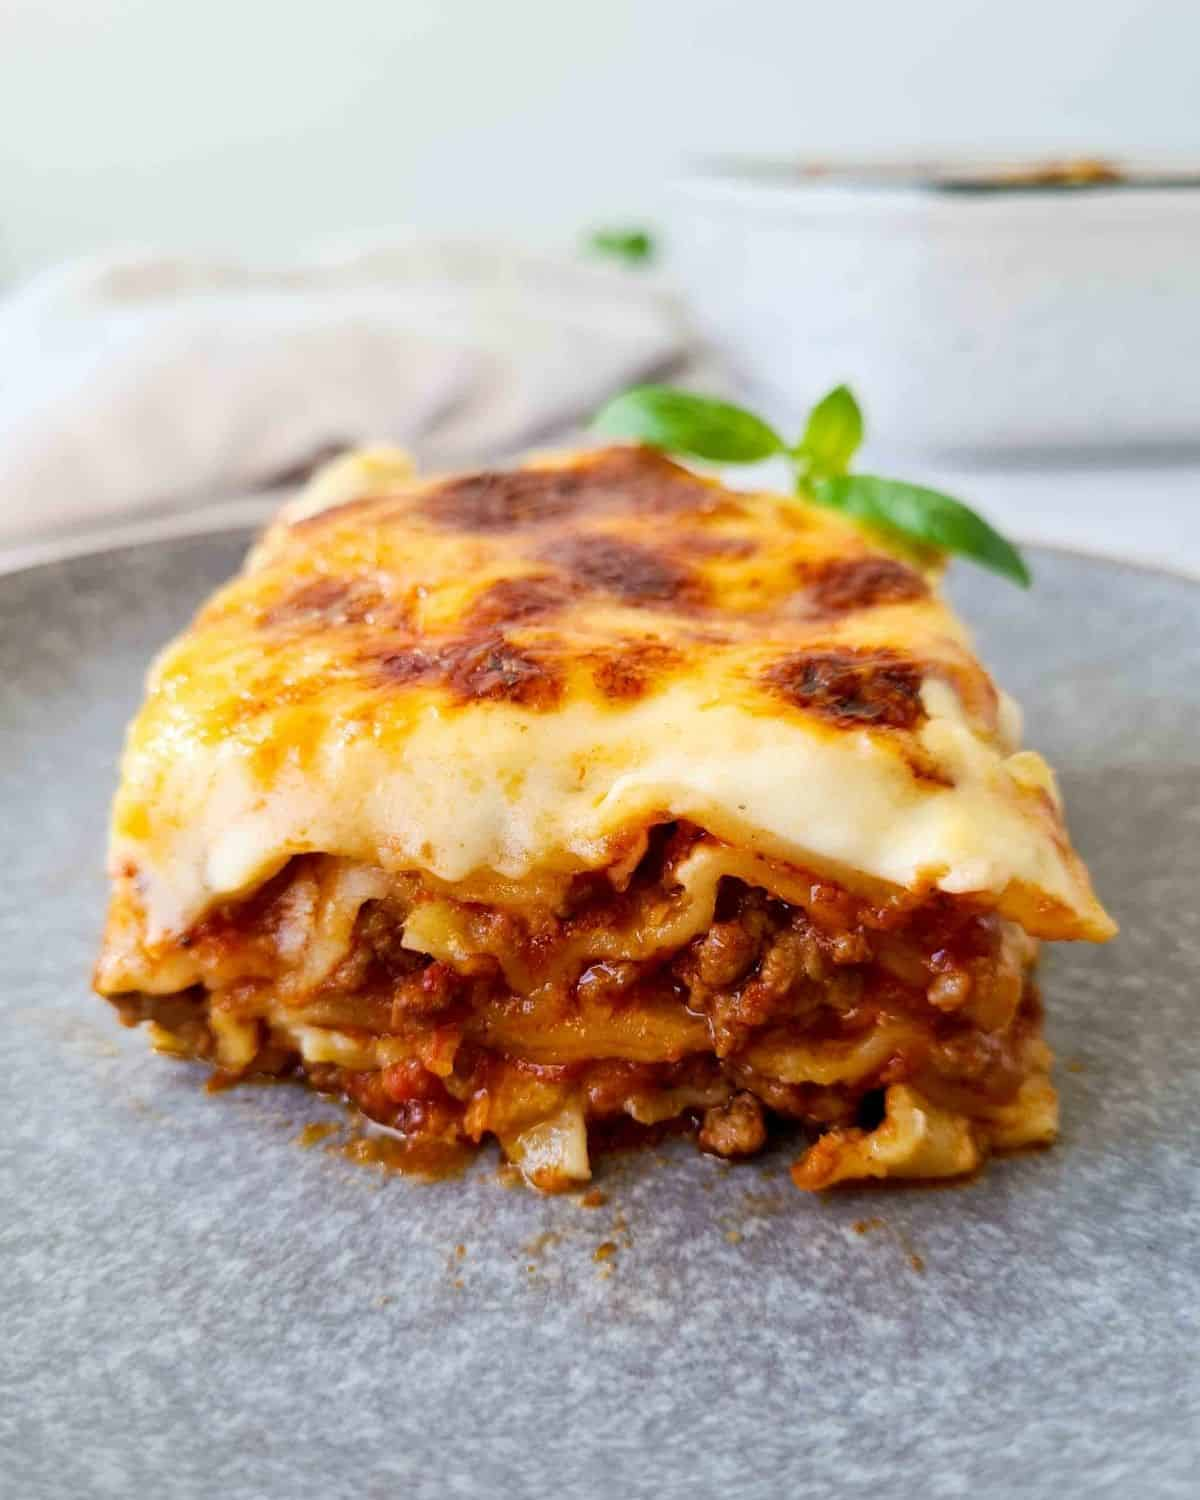 Side front on view of a slice of lasagna on a grey plate with emphasis of a thick layer of bechamel sauce.